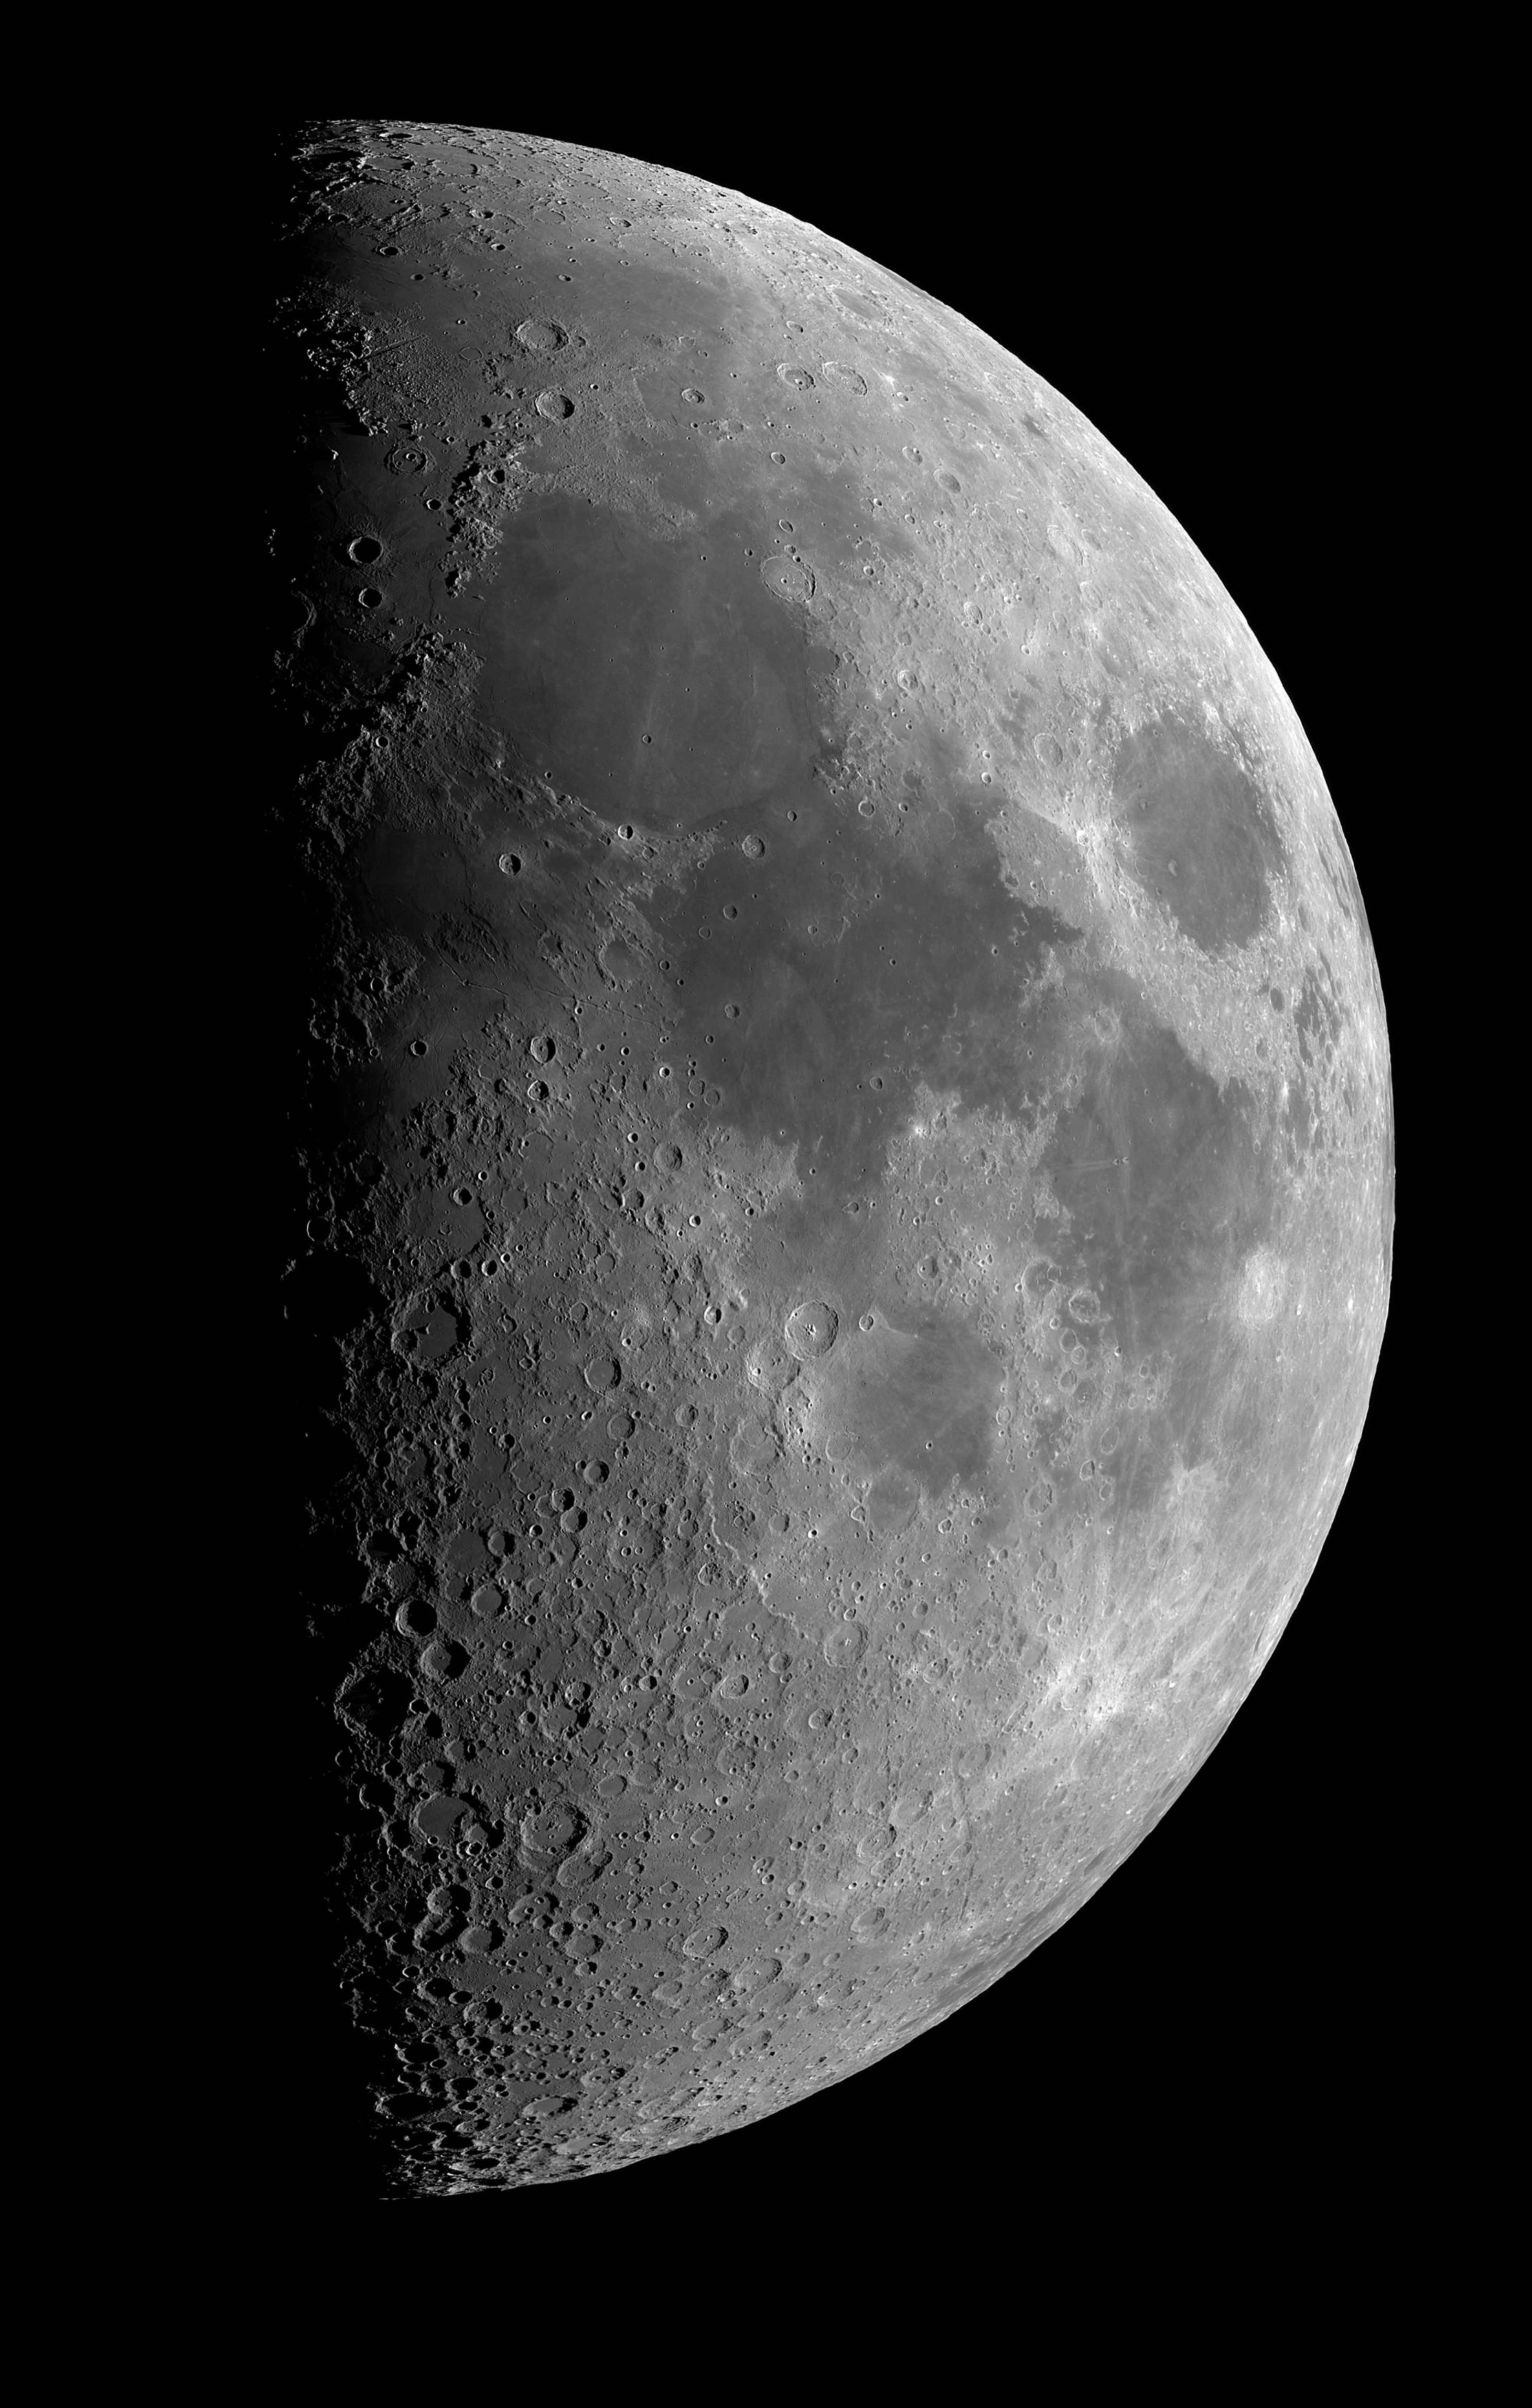 Lune_Mosaique_2avril2010_100_web.jpg